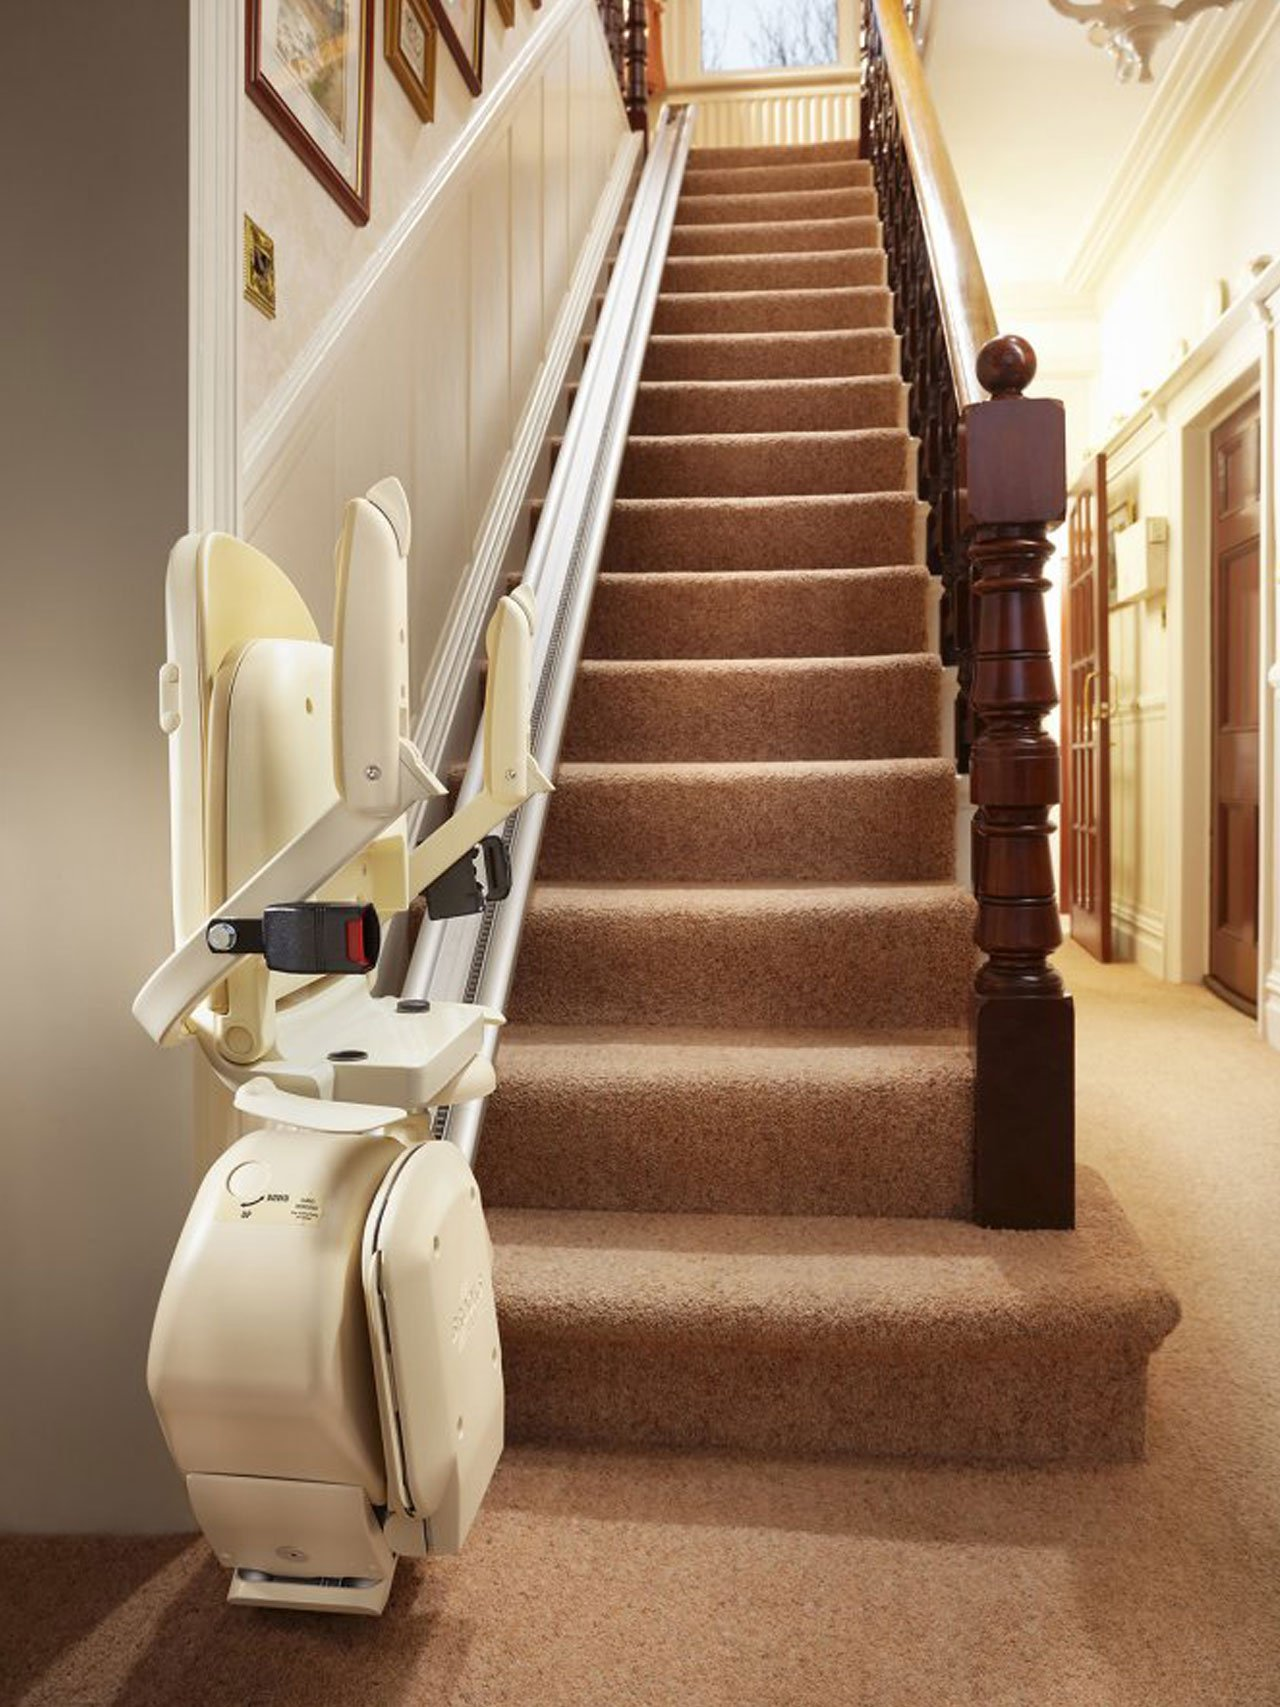 Stairlift rental  options